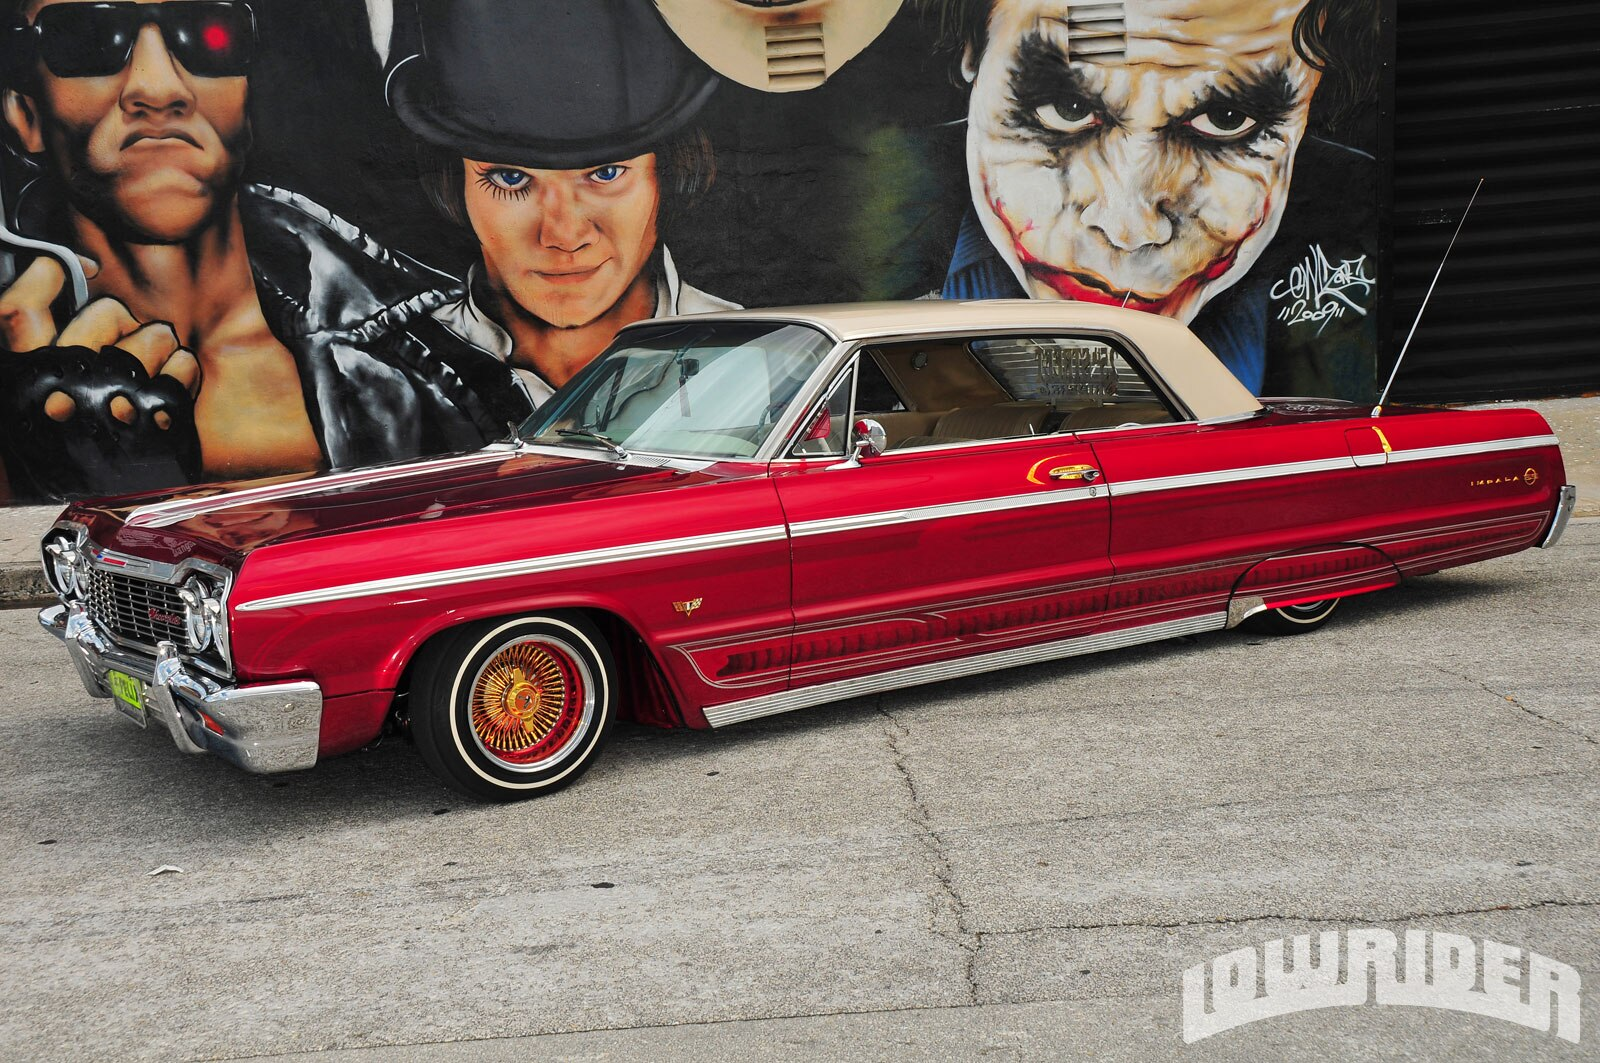 Top 10 1964 Chevrolet Impala Features